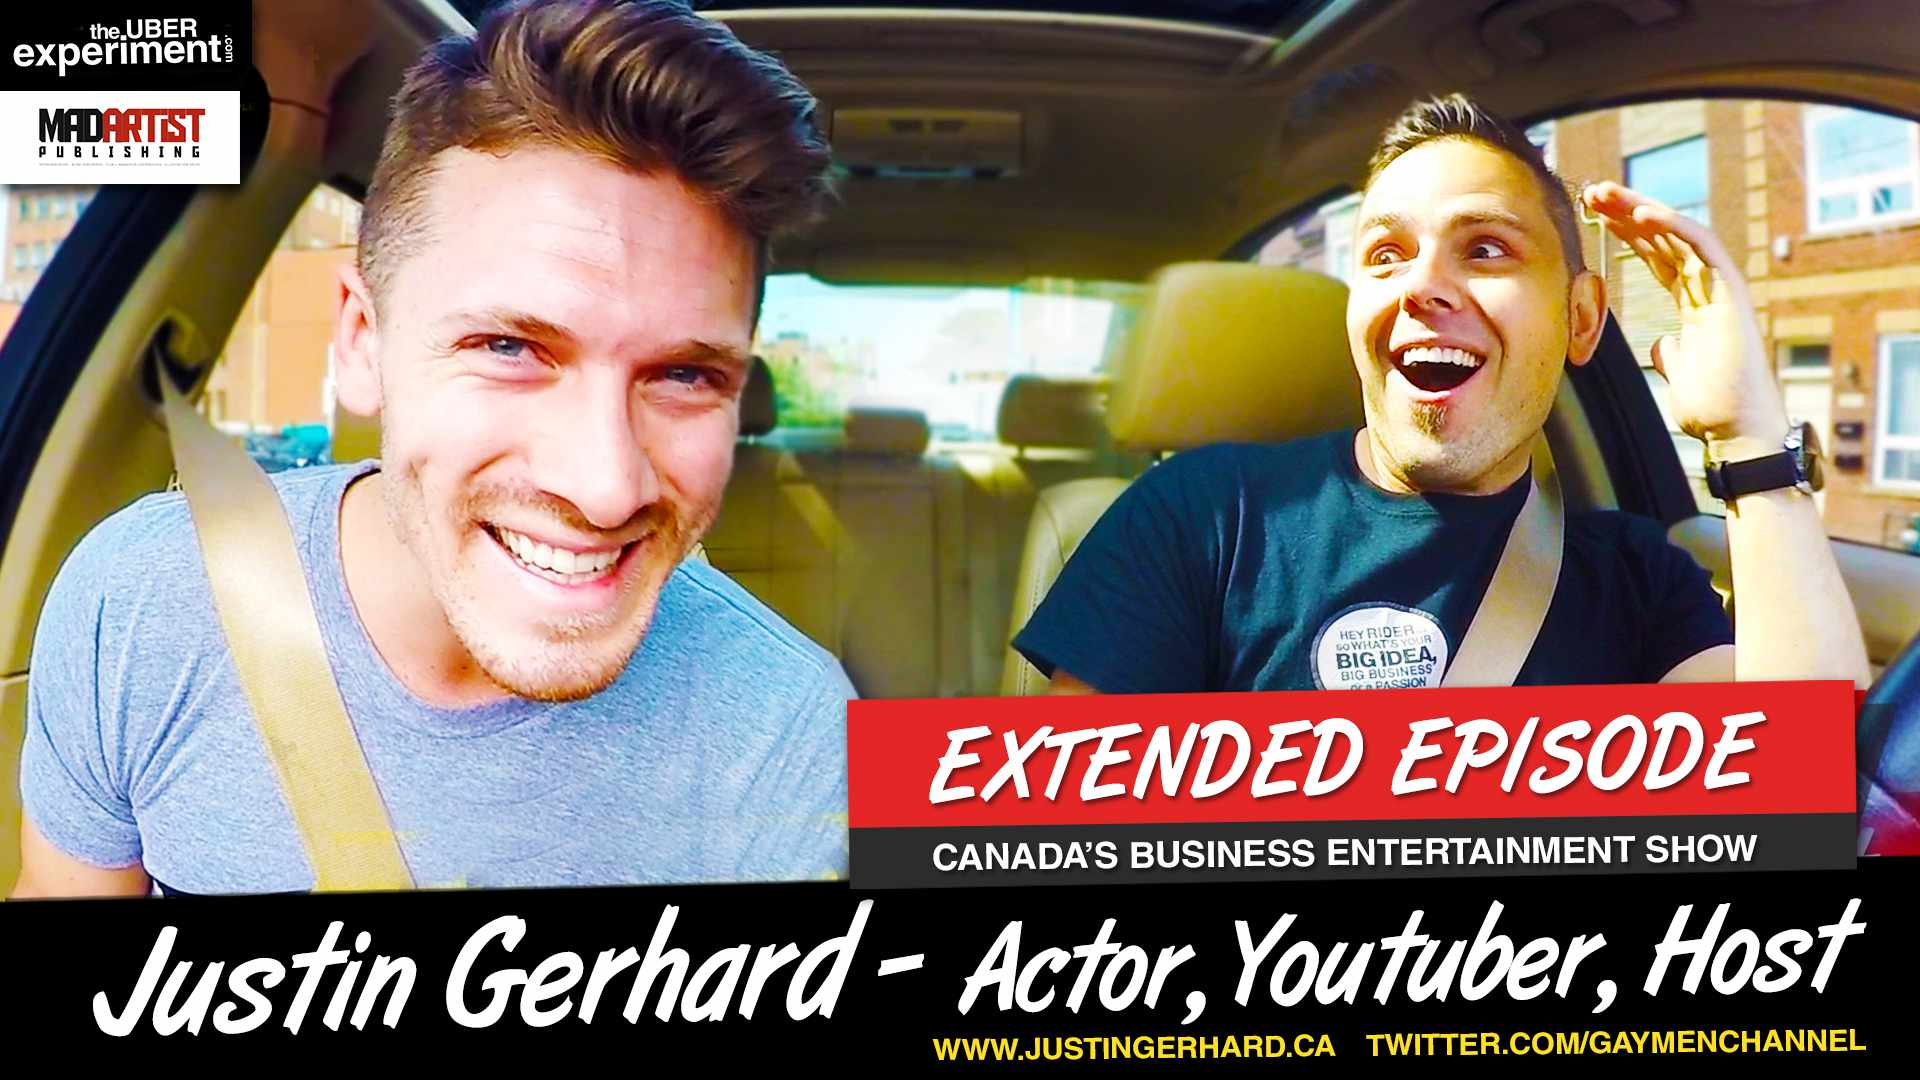 THE GAYEST UBER EVER -  Marcin Migdal interviews Justin Gerhard for The UBER Experiment Reality Show